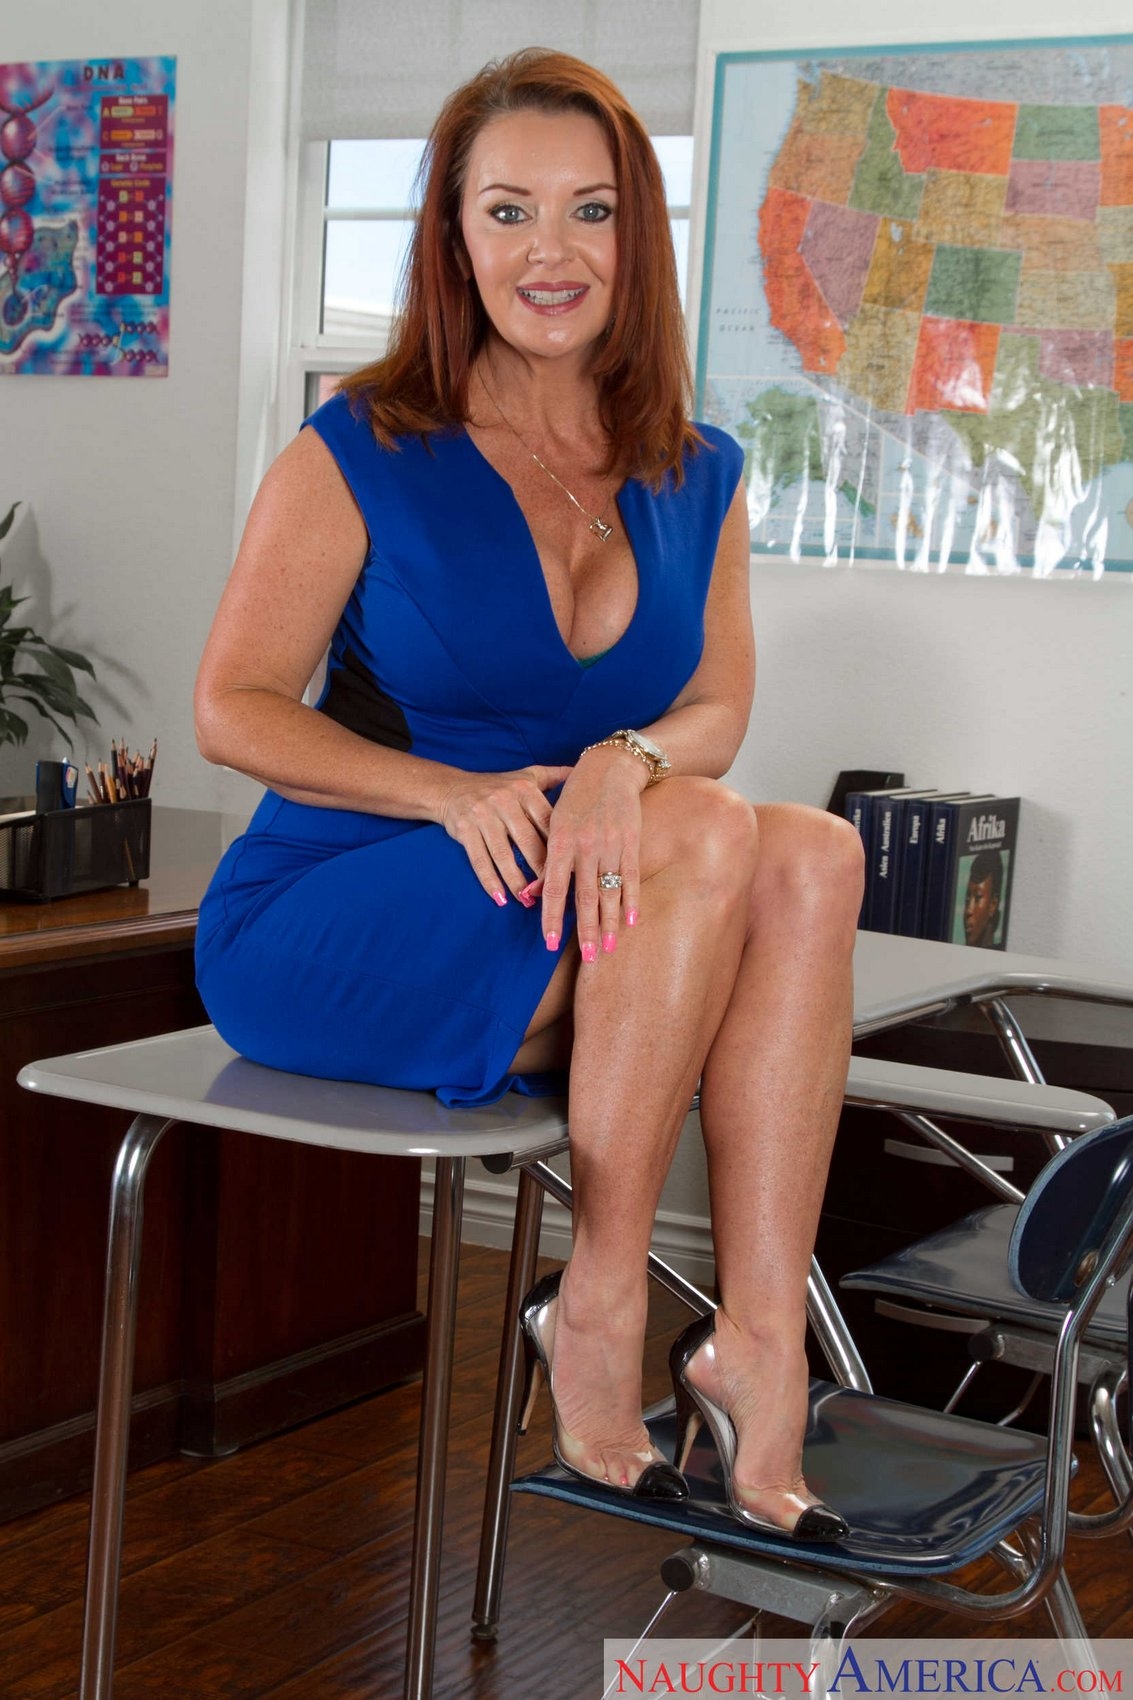 Fascinating milf beauty Ava Austin is spreading her sweet legs № 1012474  скачать